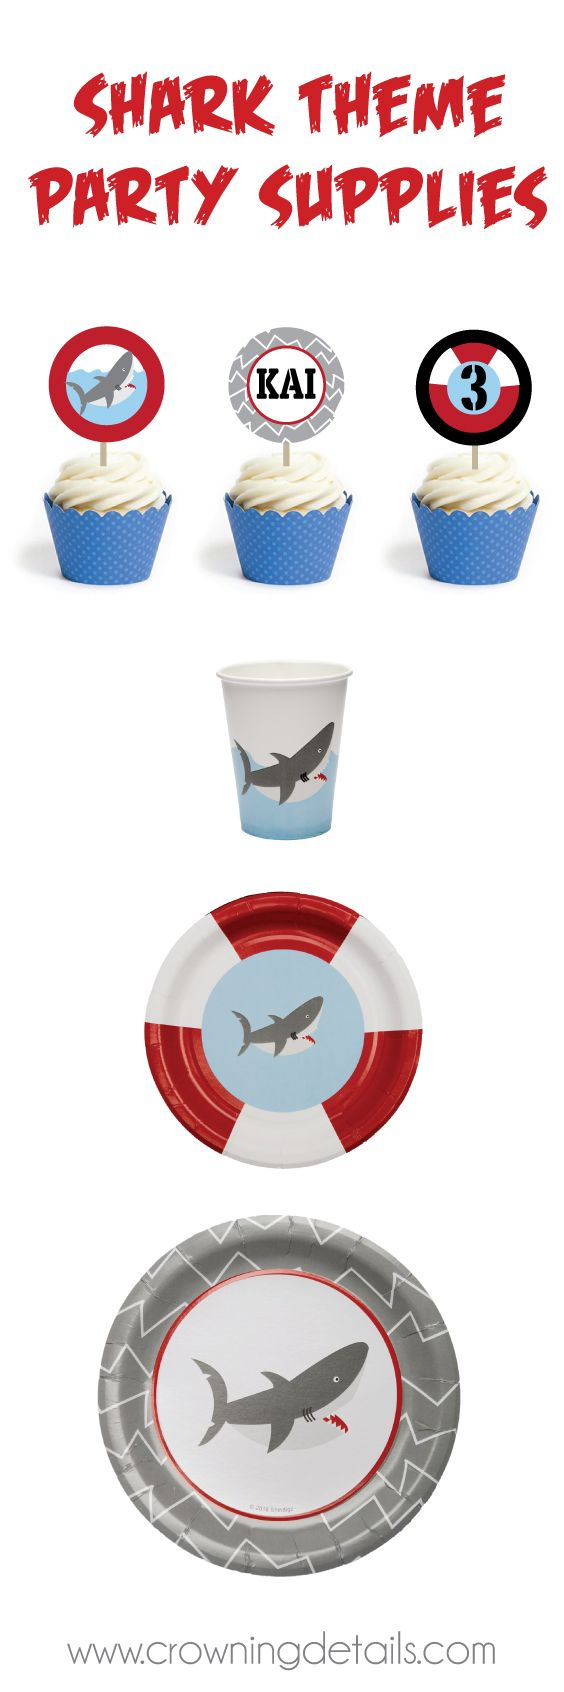 Shark party supplies for a FIN-tastic birthday party! Shop the entire collection of shark party supplies in our online store.